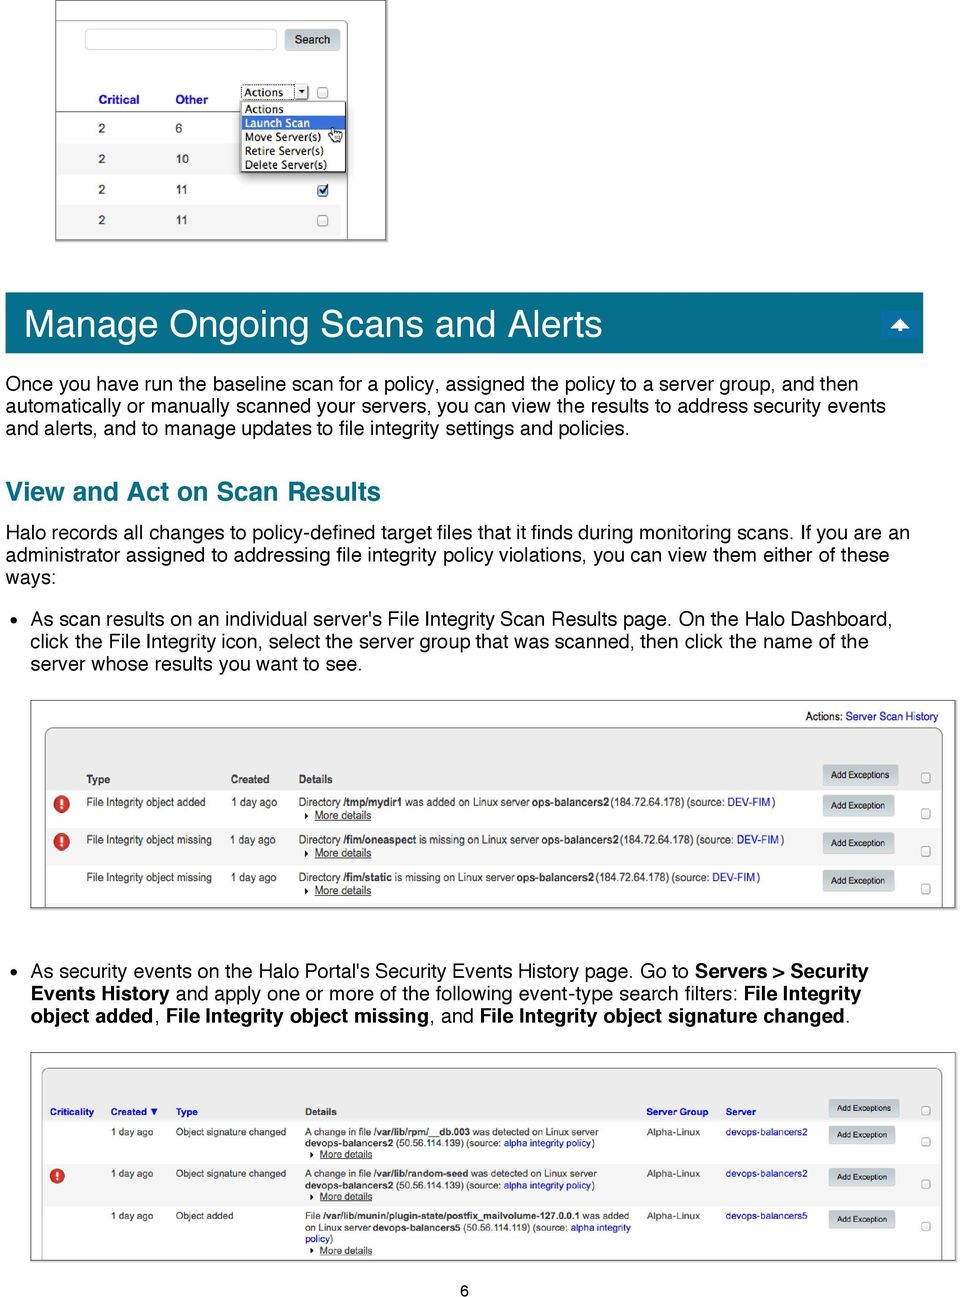 View and Act on Scan Results Halo records all changes to policy-defined target files that it finds during monitoring scans.